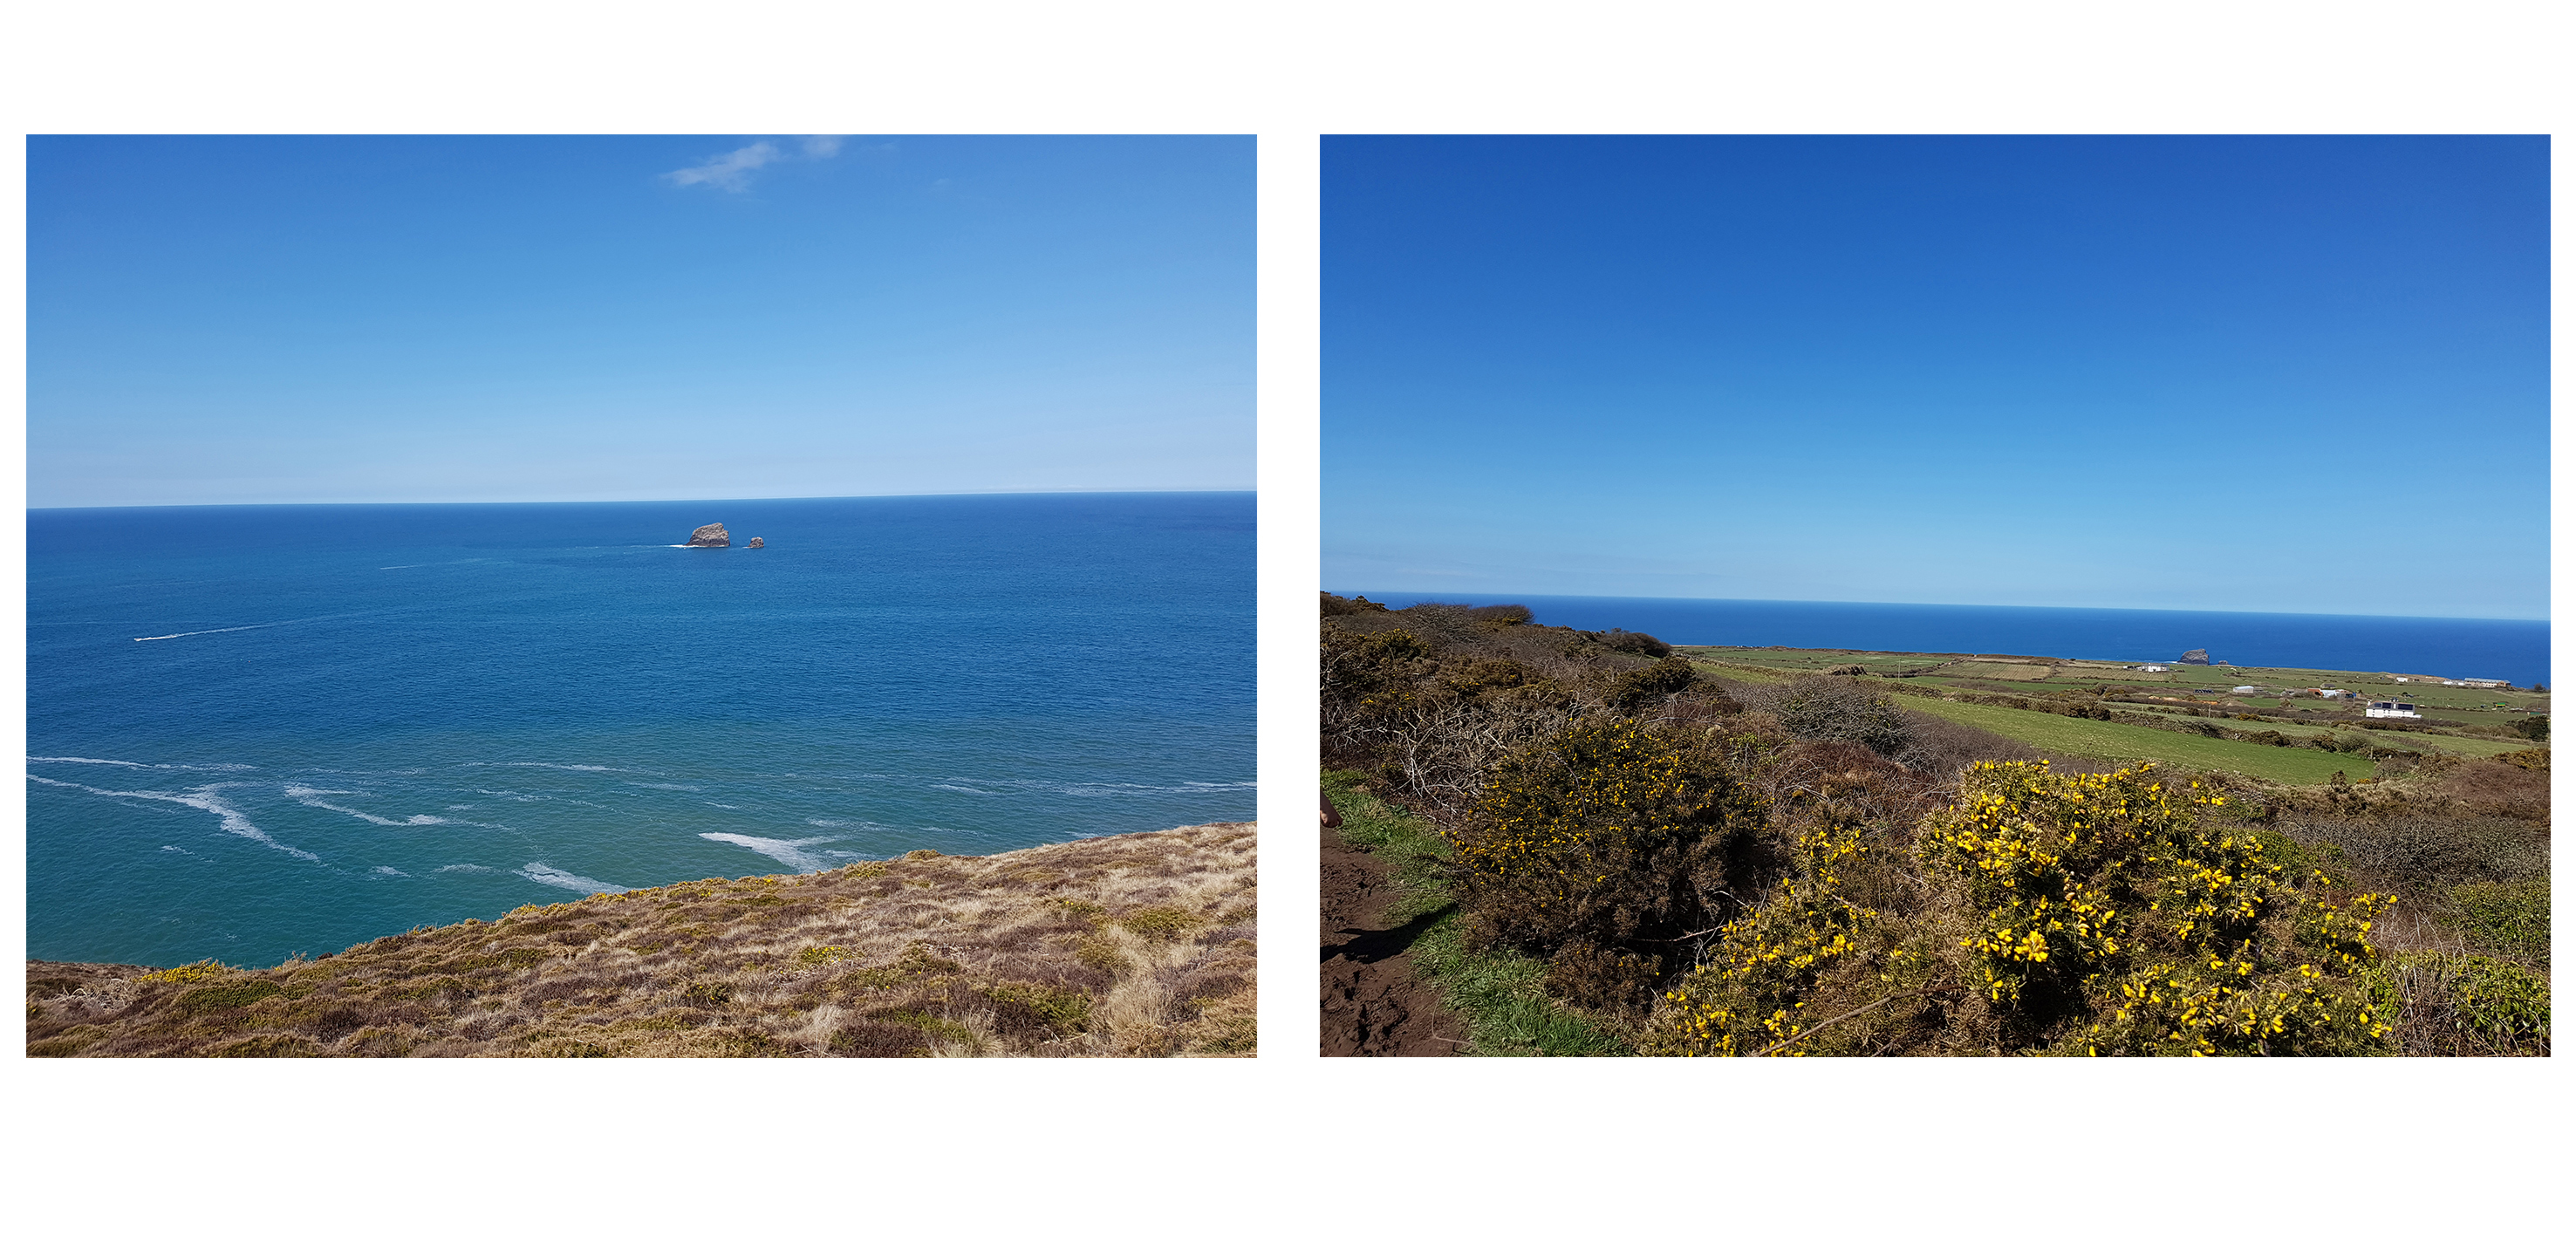 2 images of St Agnes Cornwall blue ocean sea view yellow gorse